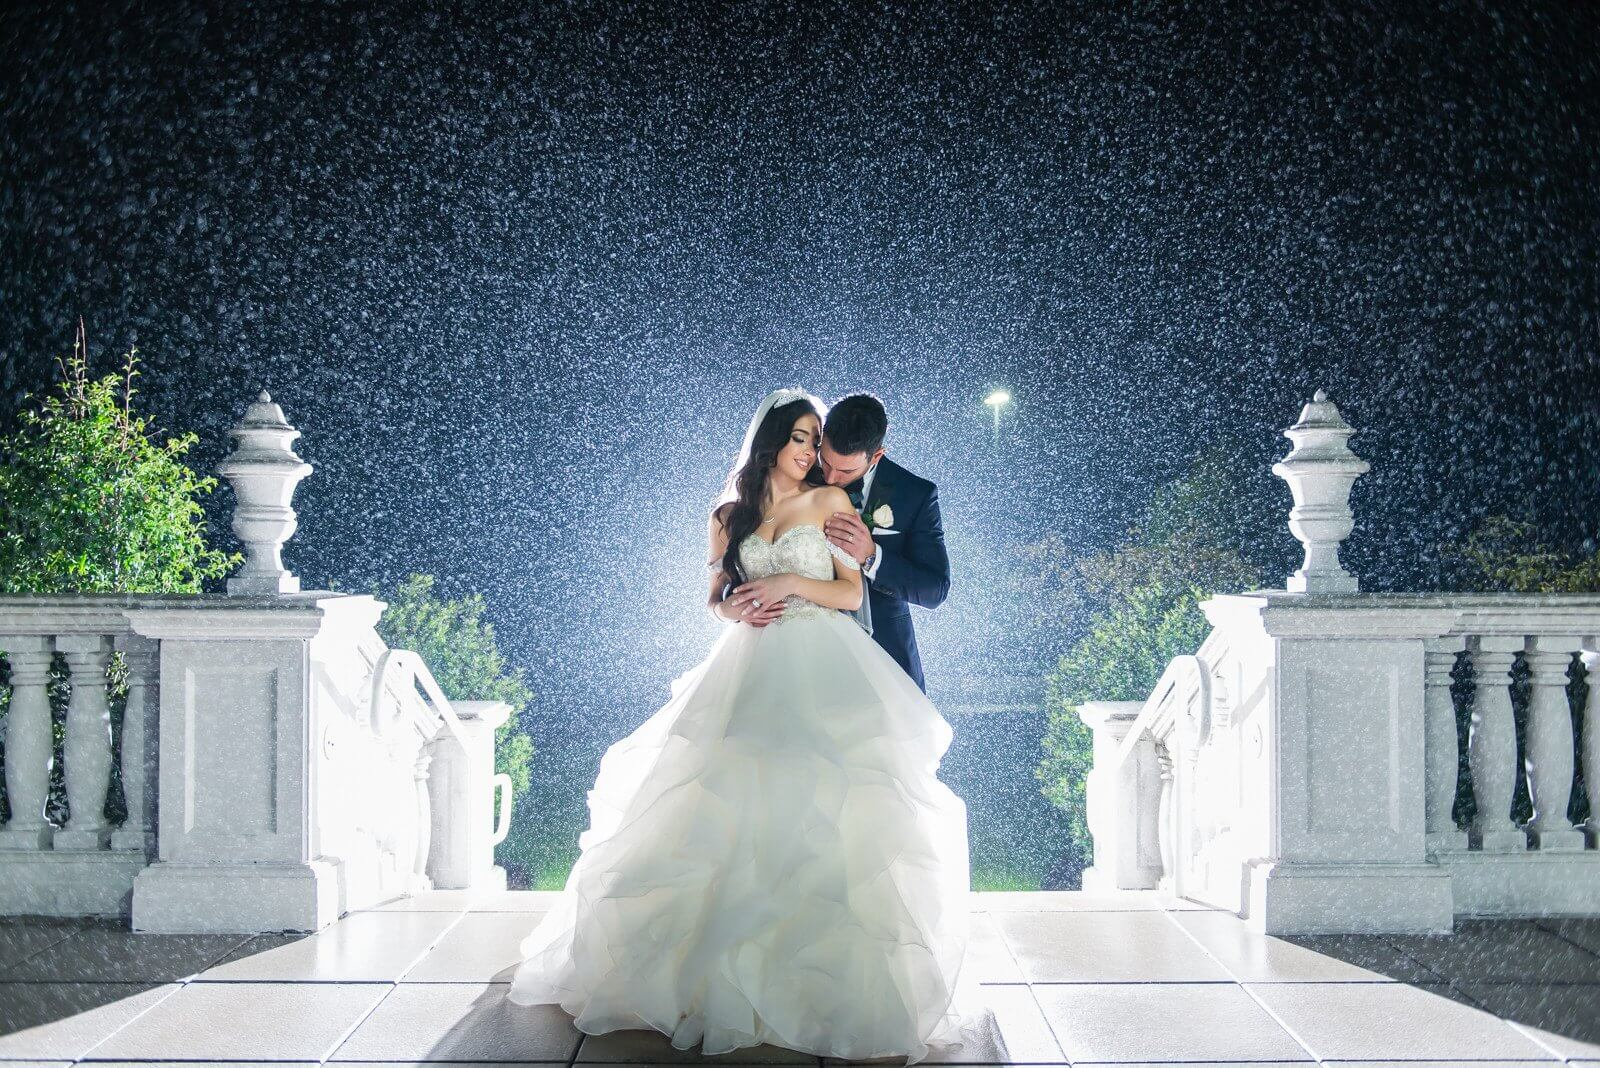 165-New Jersey videography wedding photography